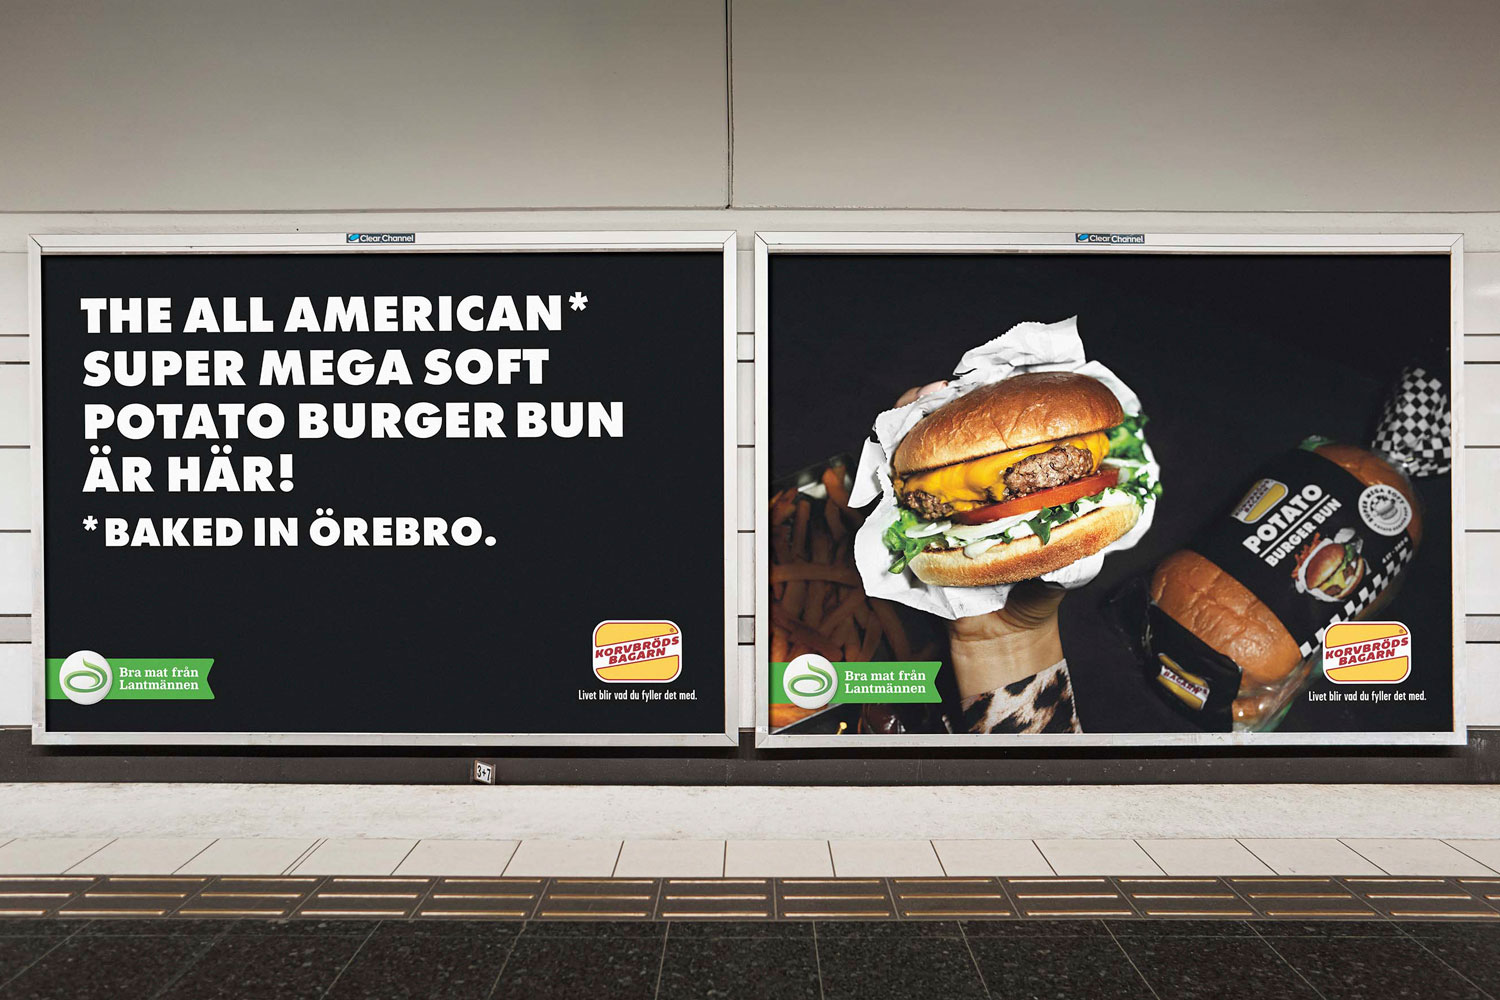 Potato burger bun – billboard